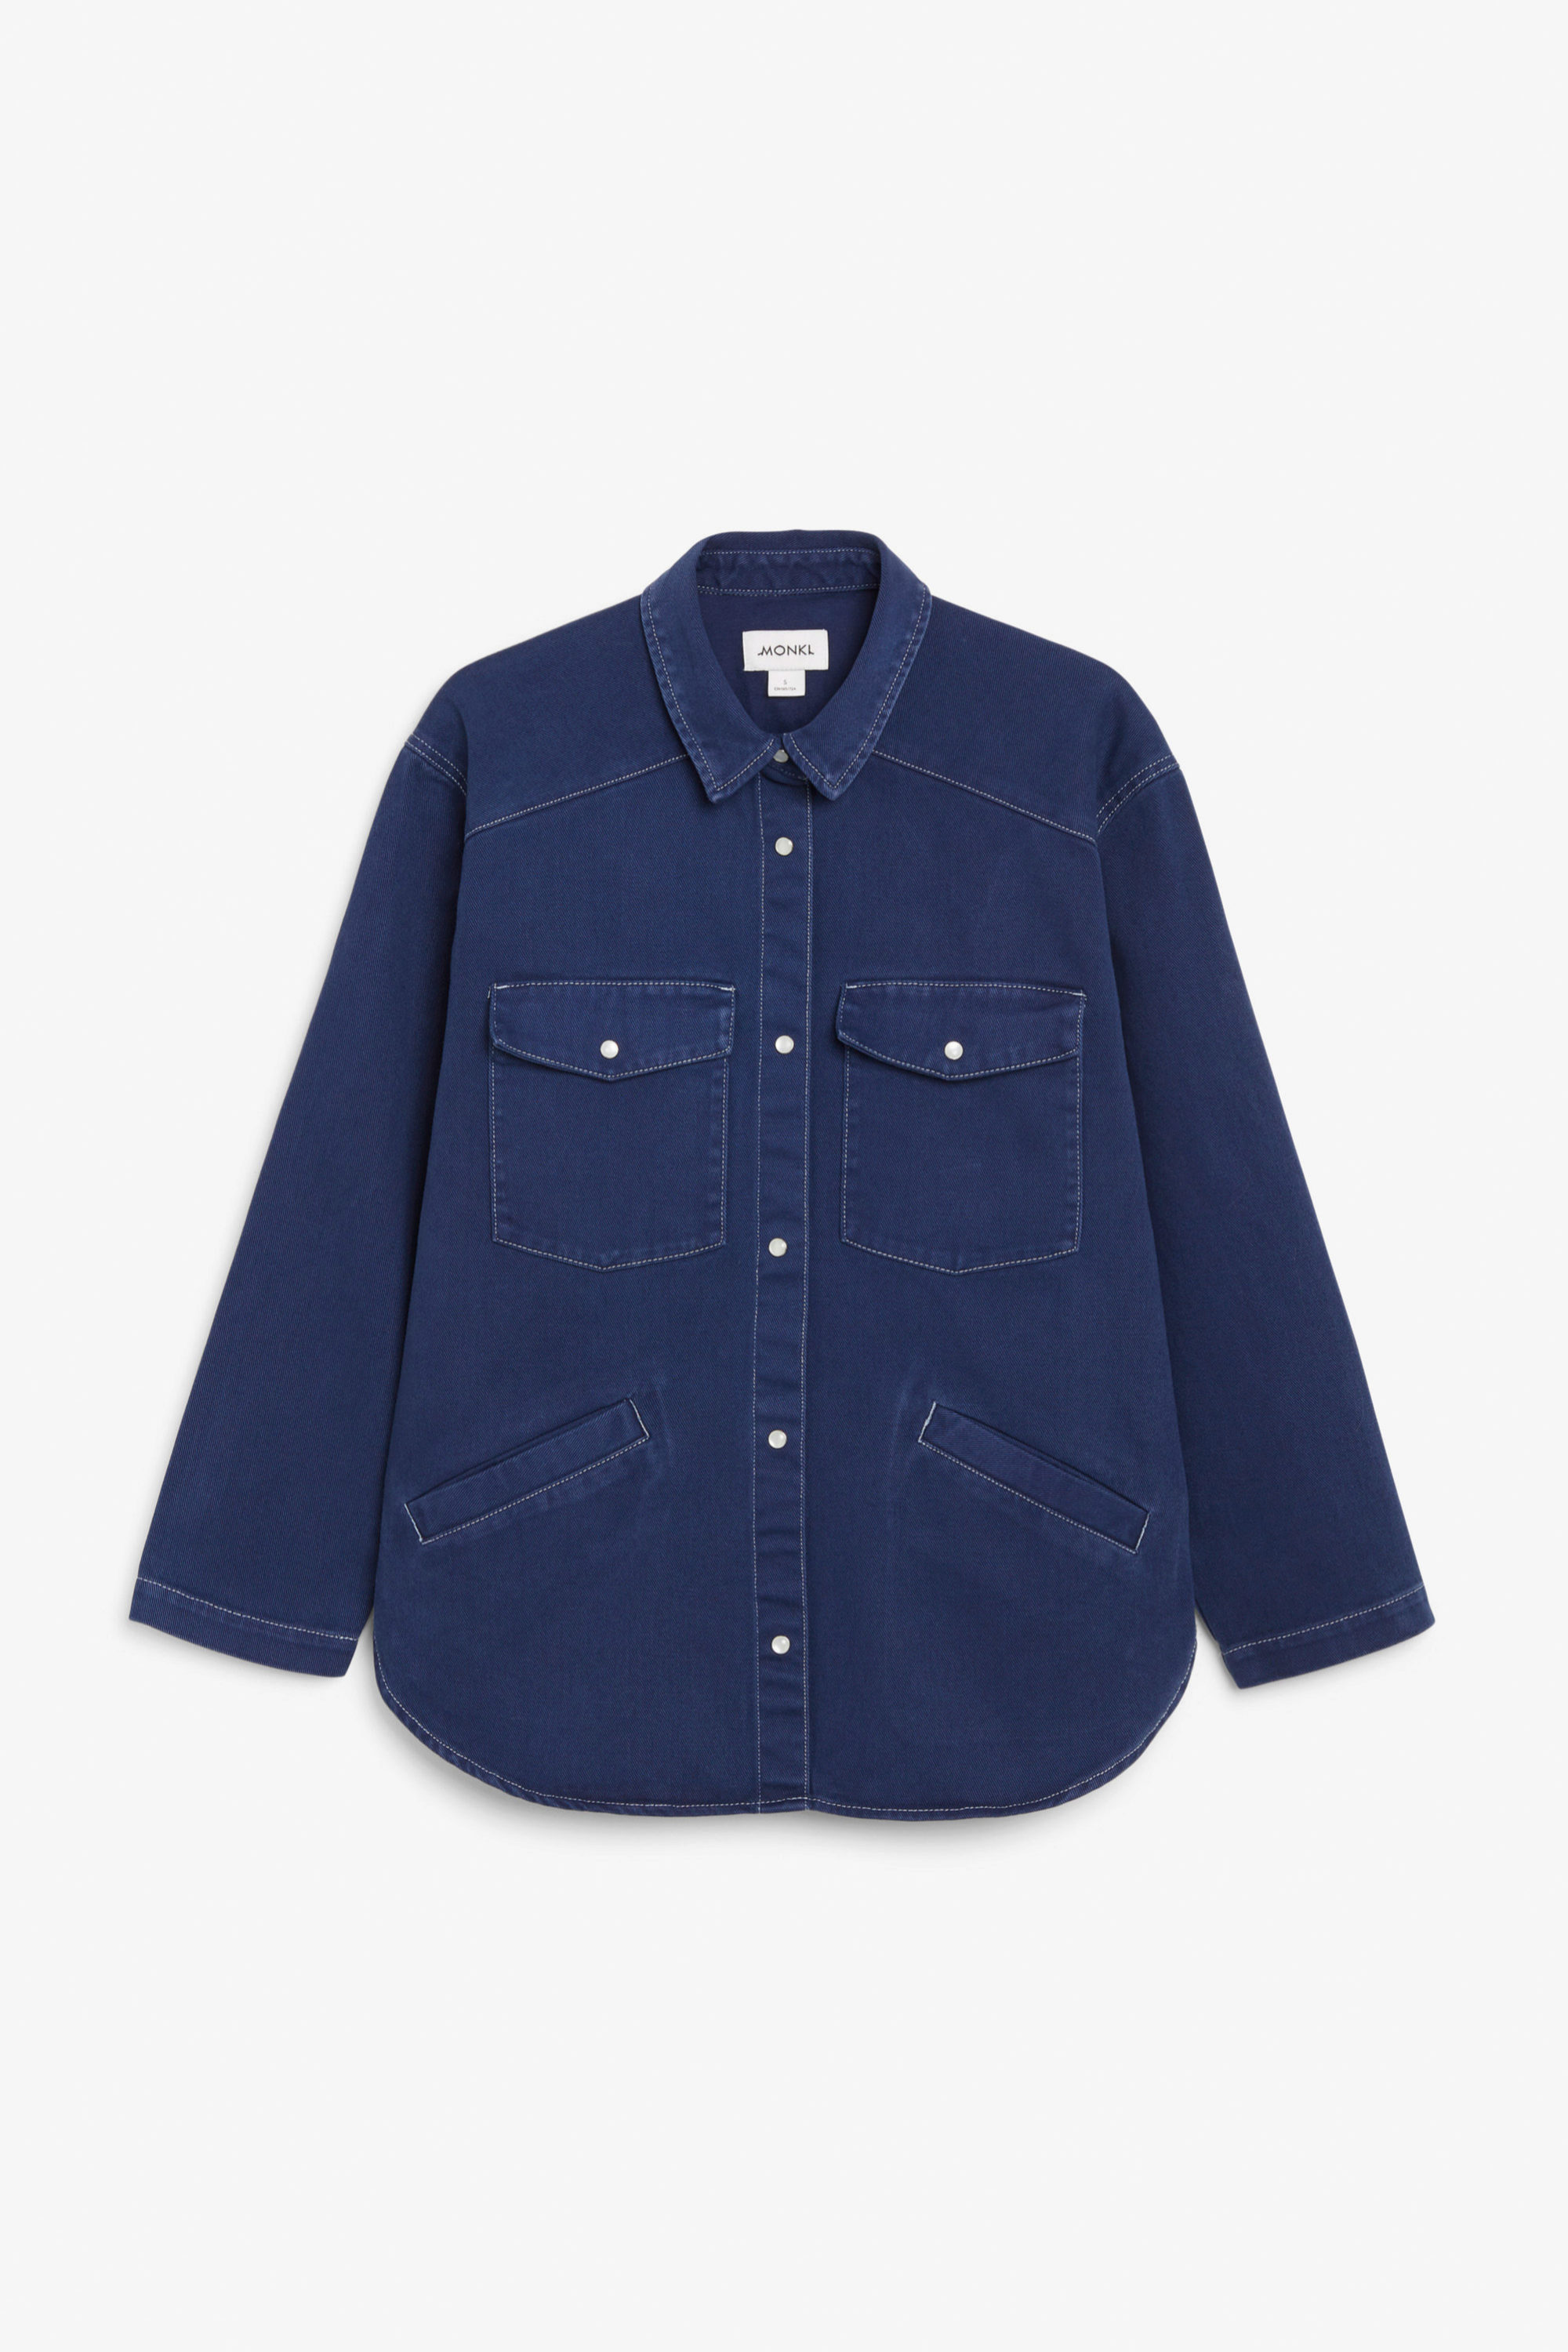 Sobrecamisa oversized denim de Monki